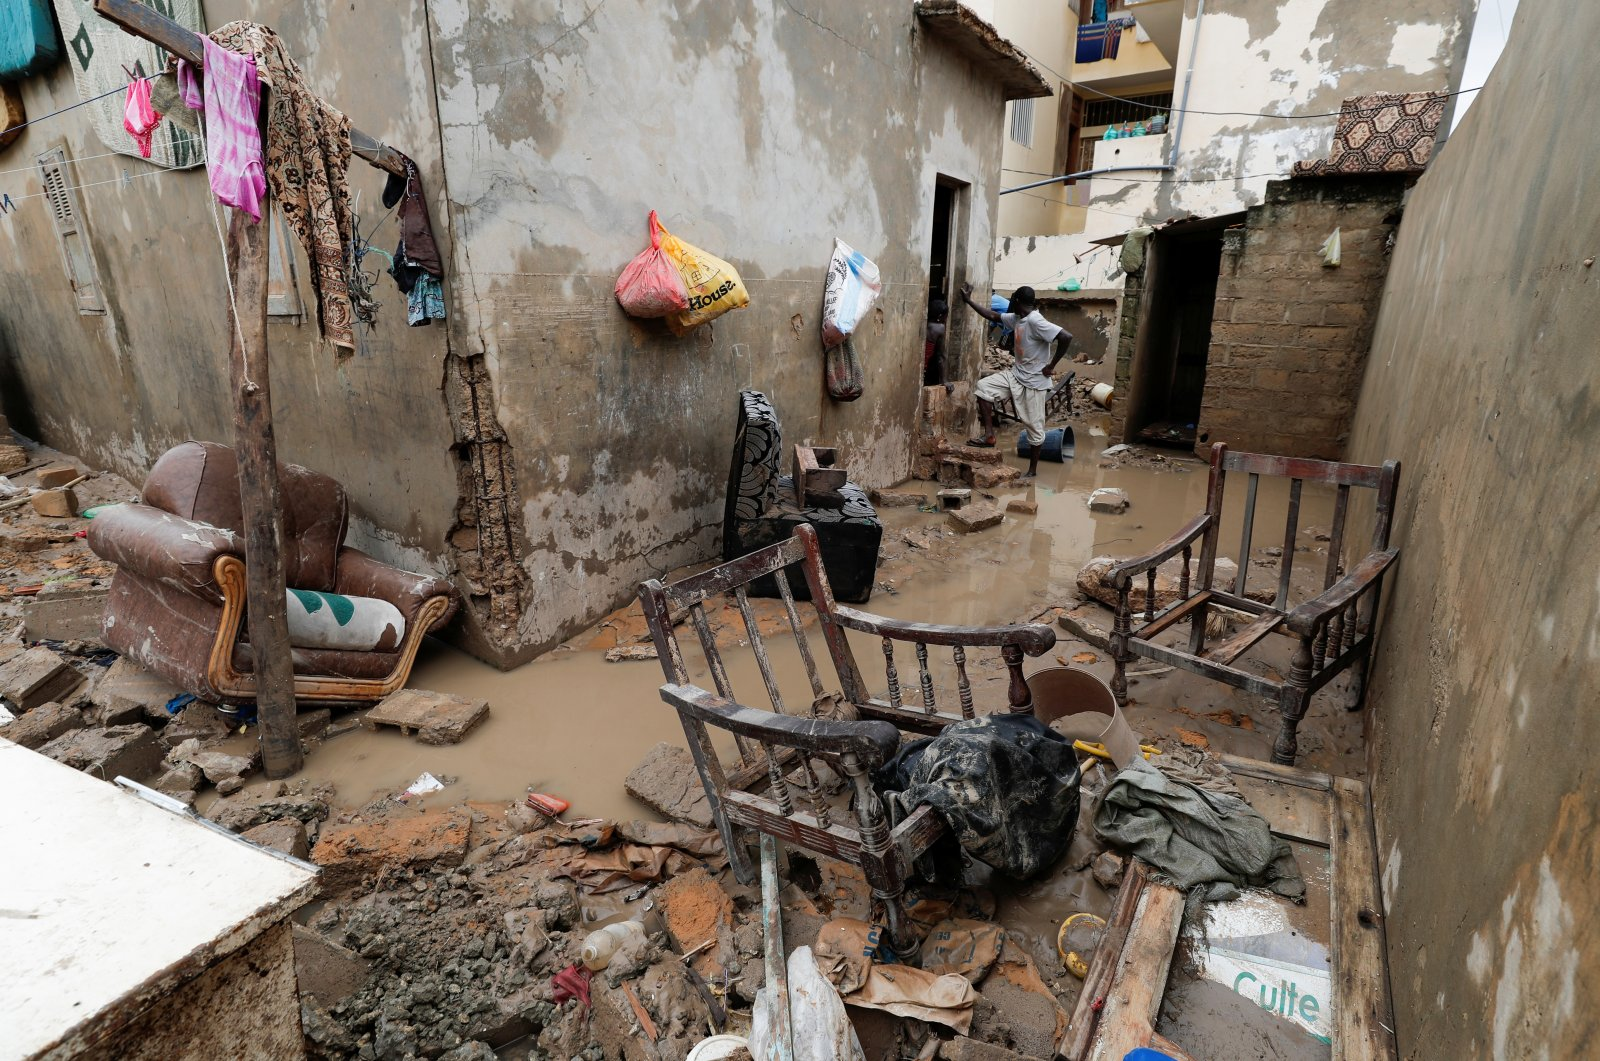 A man stands at a house's flooded courtyard after heavy rains in the Ndiaga Mbaye district on the outskirts of Dakar, Senegal, Sept. 6, 2020. (Reuters Photo)